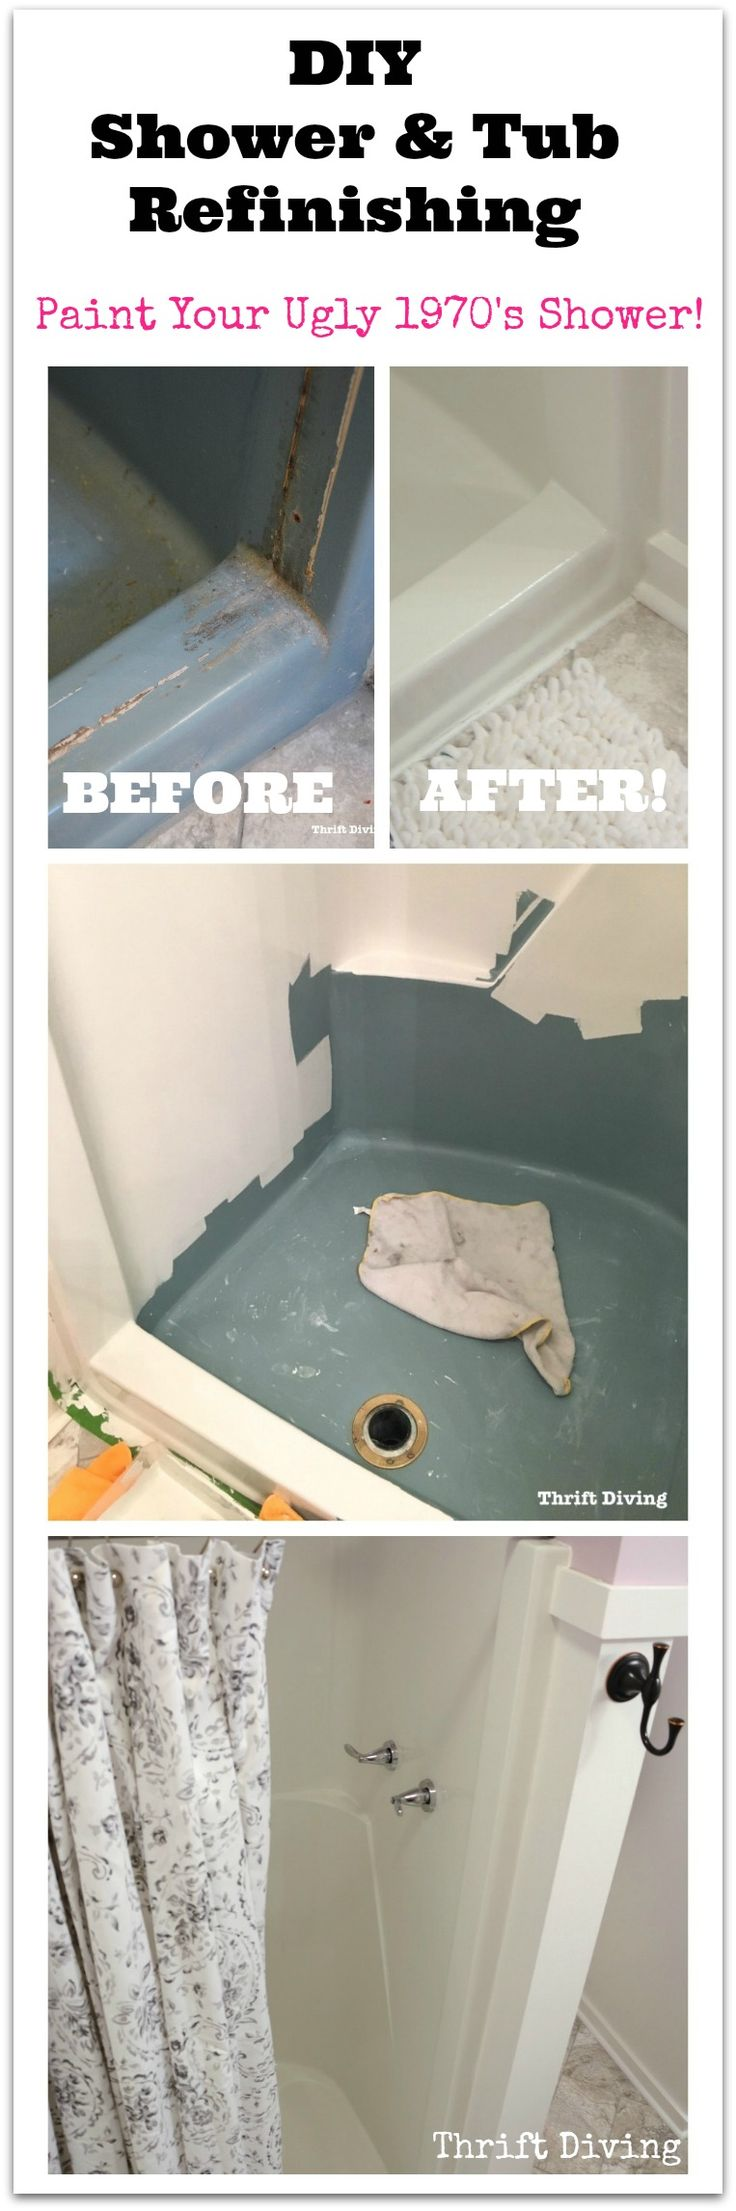 How to build a tiled shower tub - Diy Shower And Tub Refinishing I Painted My Old 1970 S Shower